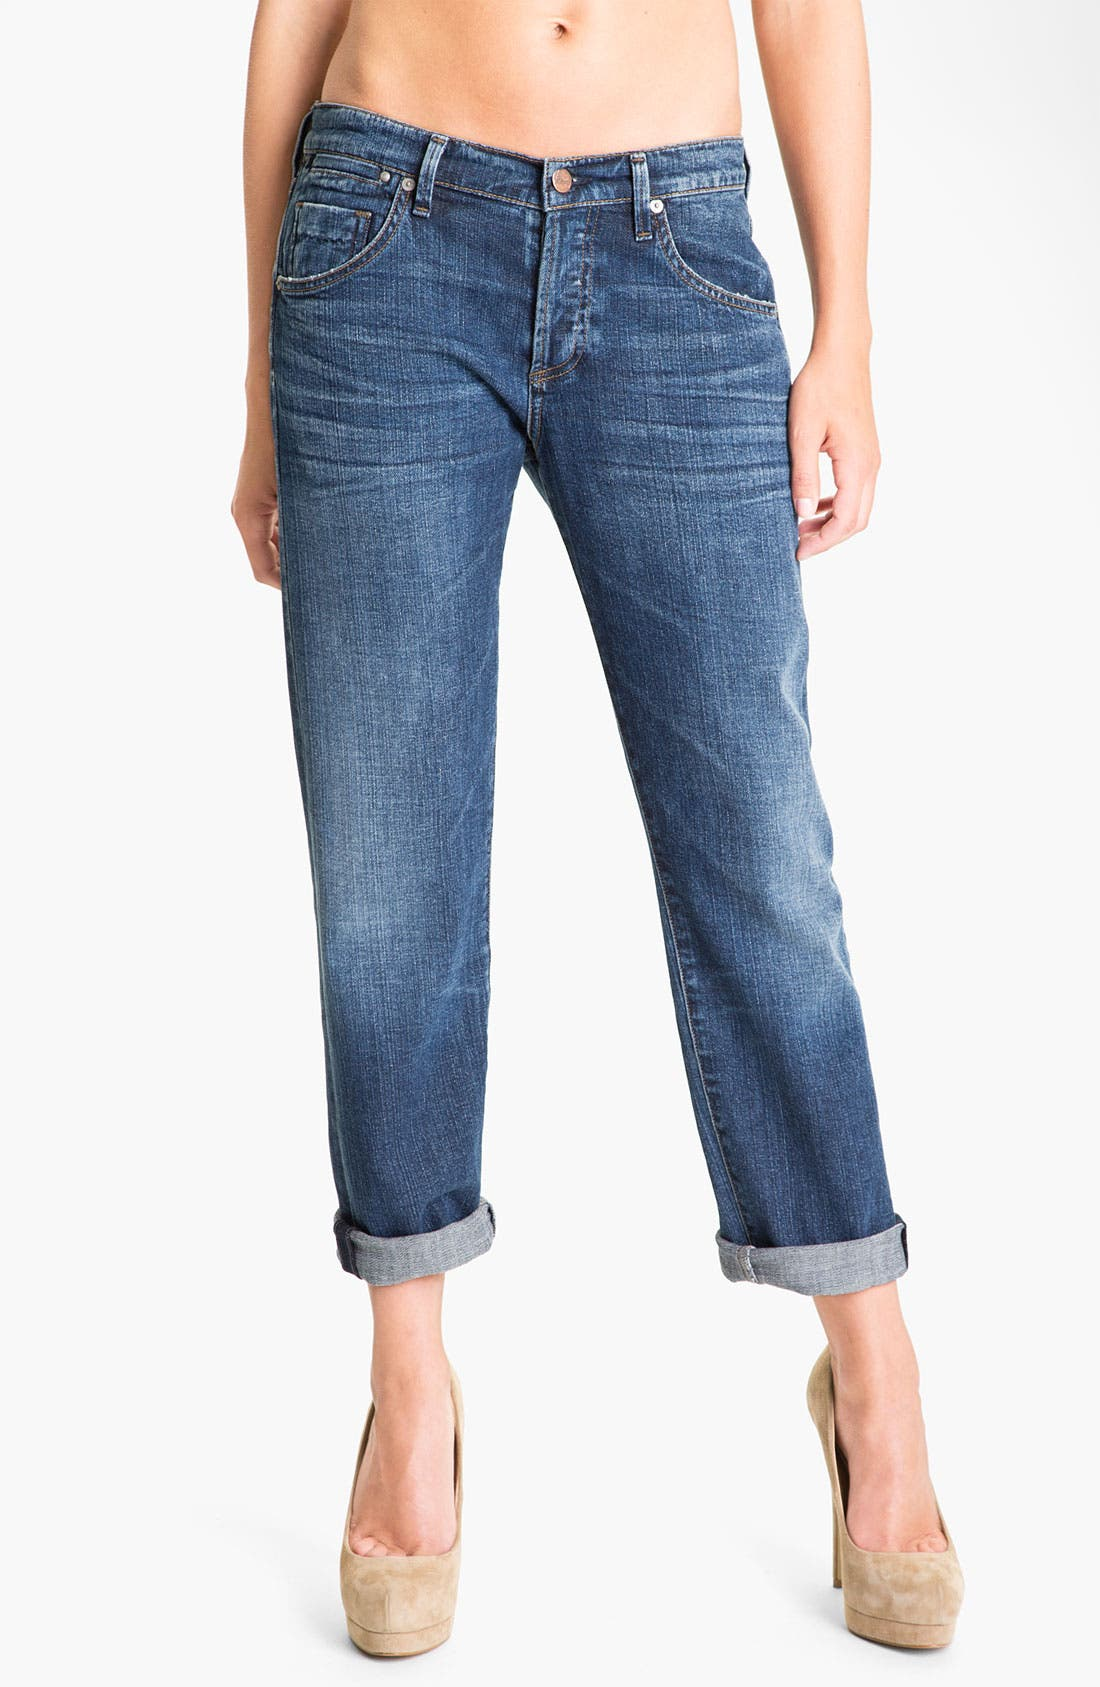 Alternate Image 1 Selected - Citizens of Humanity 'Dylan' High Rise Loose Fit Jeans (Forever)